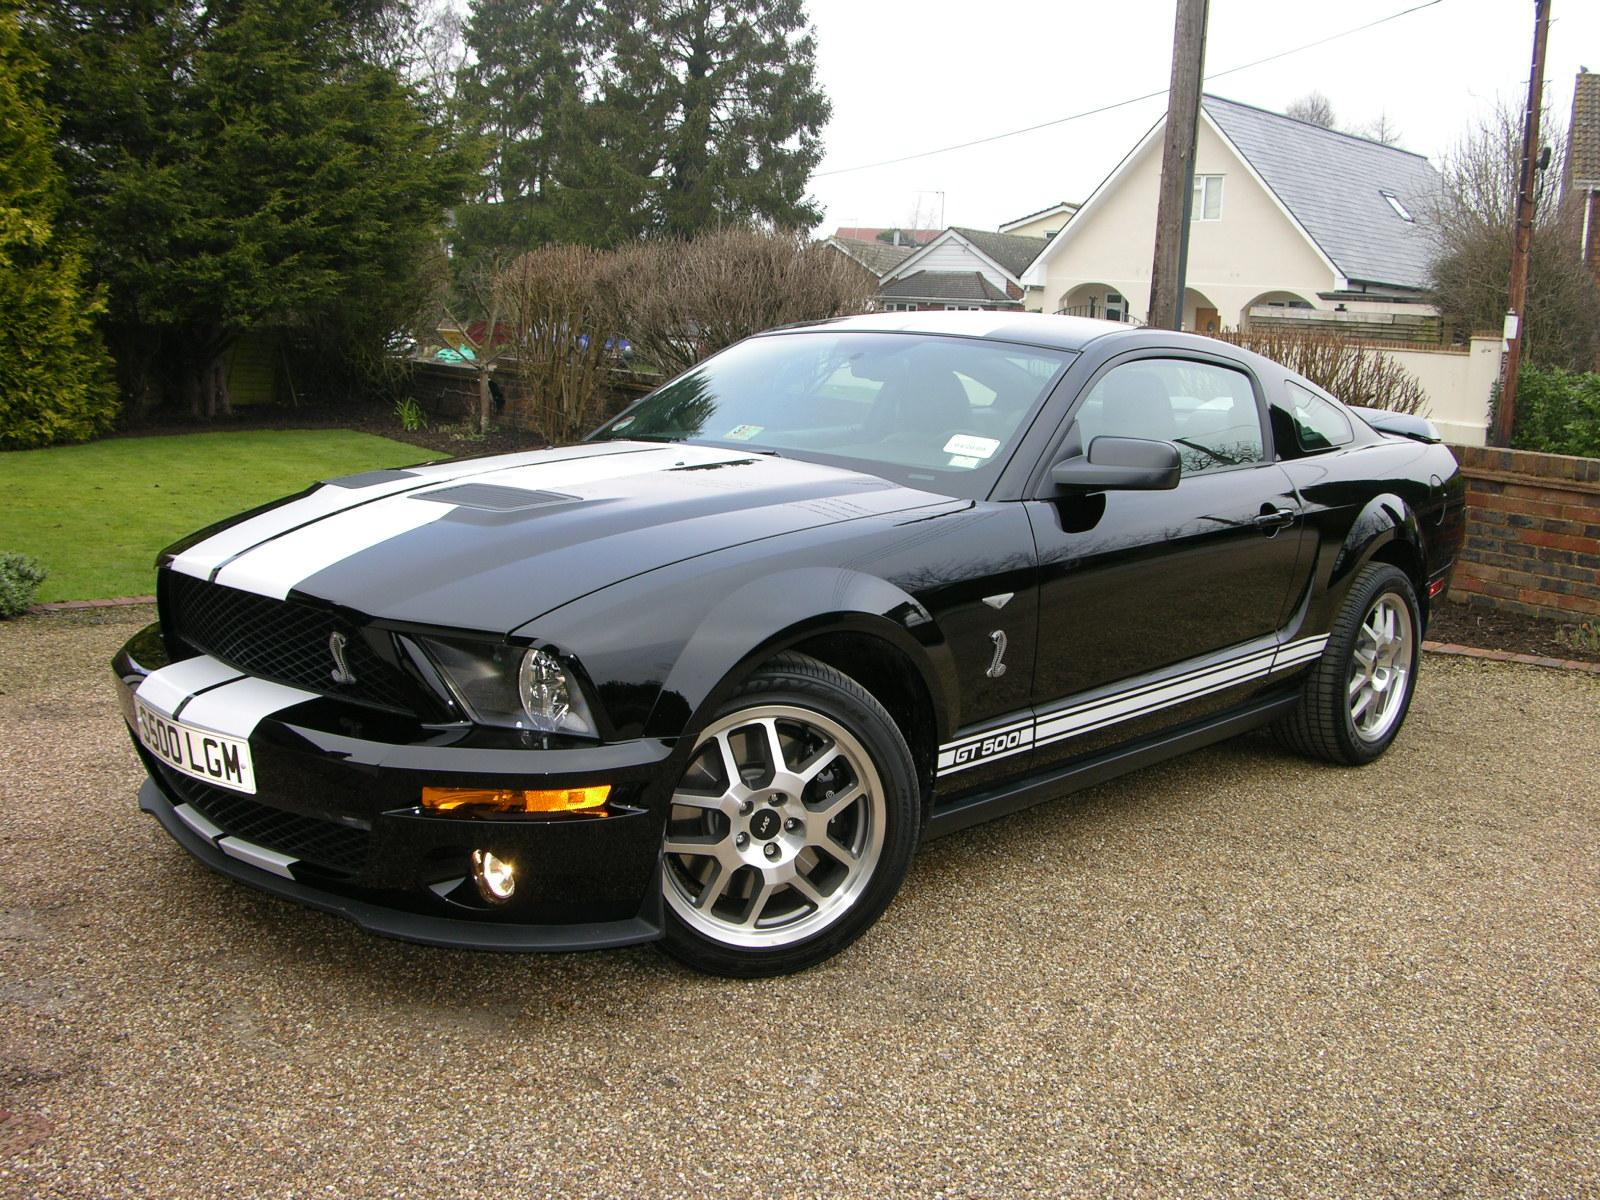 2008 ford mustang information and photos zombiedrive. Black Bedroom Furniture Sets. Home Design Ideas